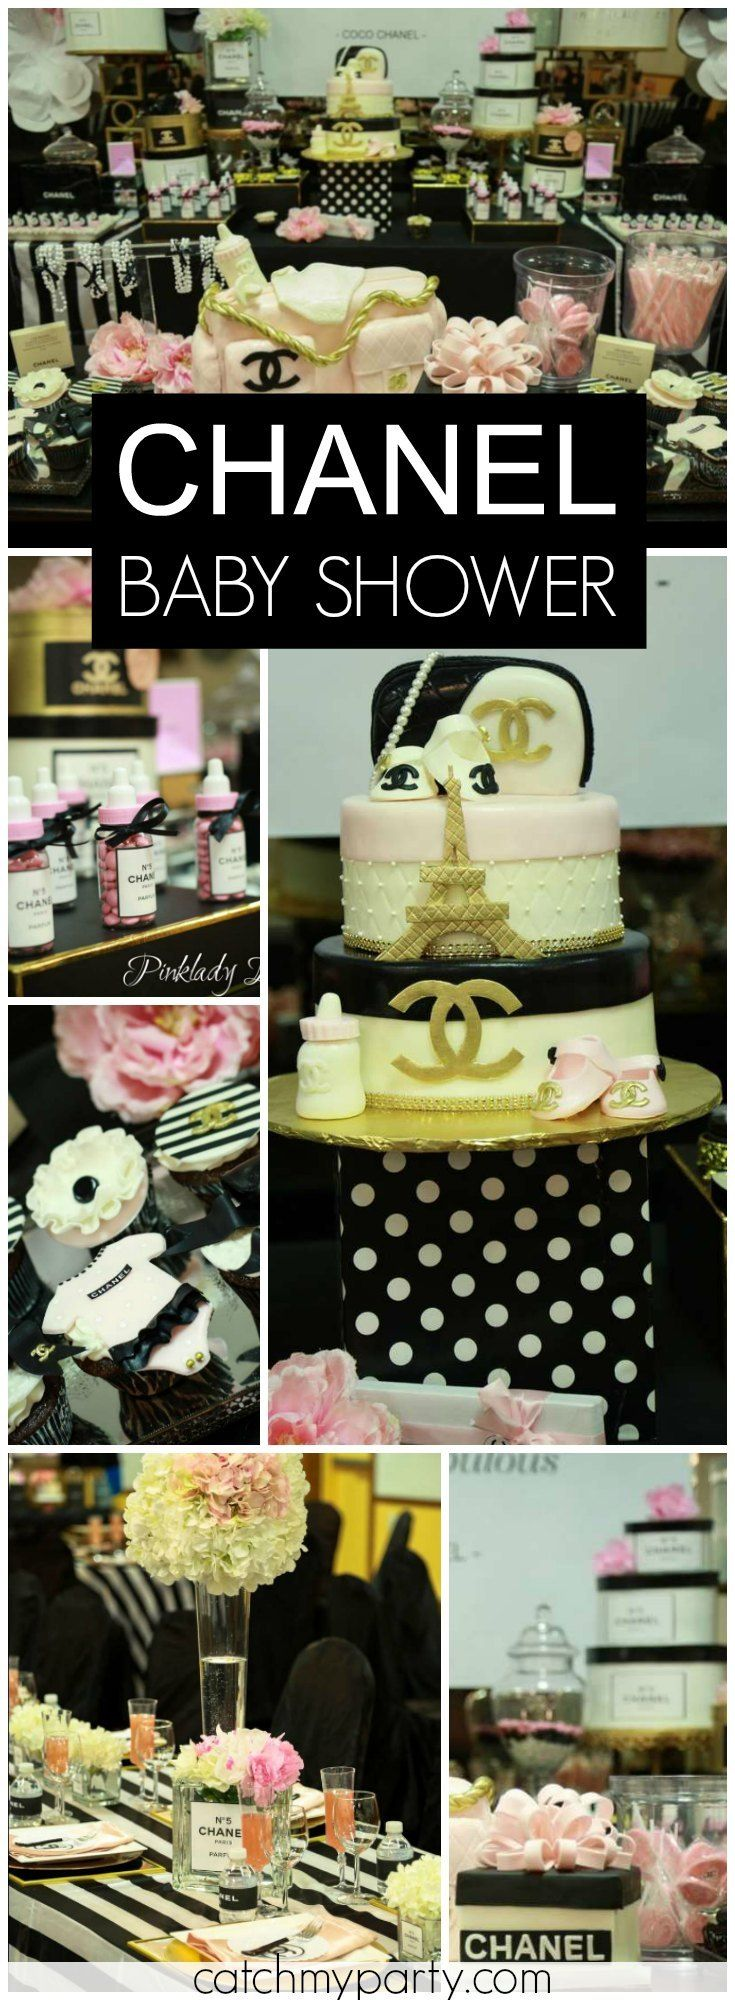 chanel baby shower coco chanel inspired baby shower chanel baby shower